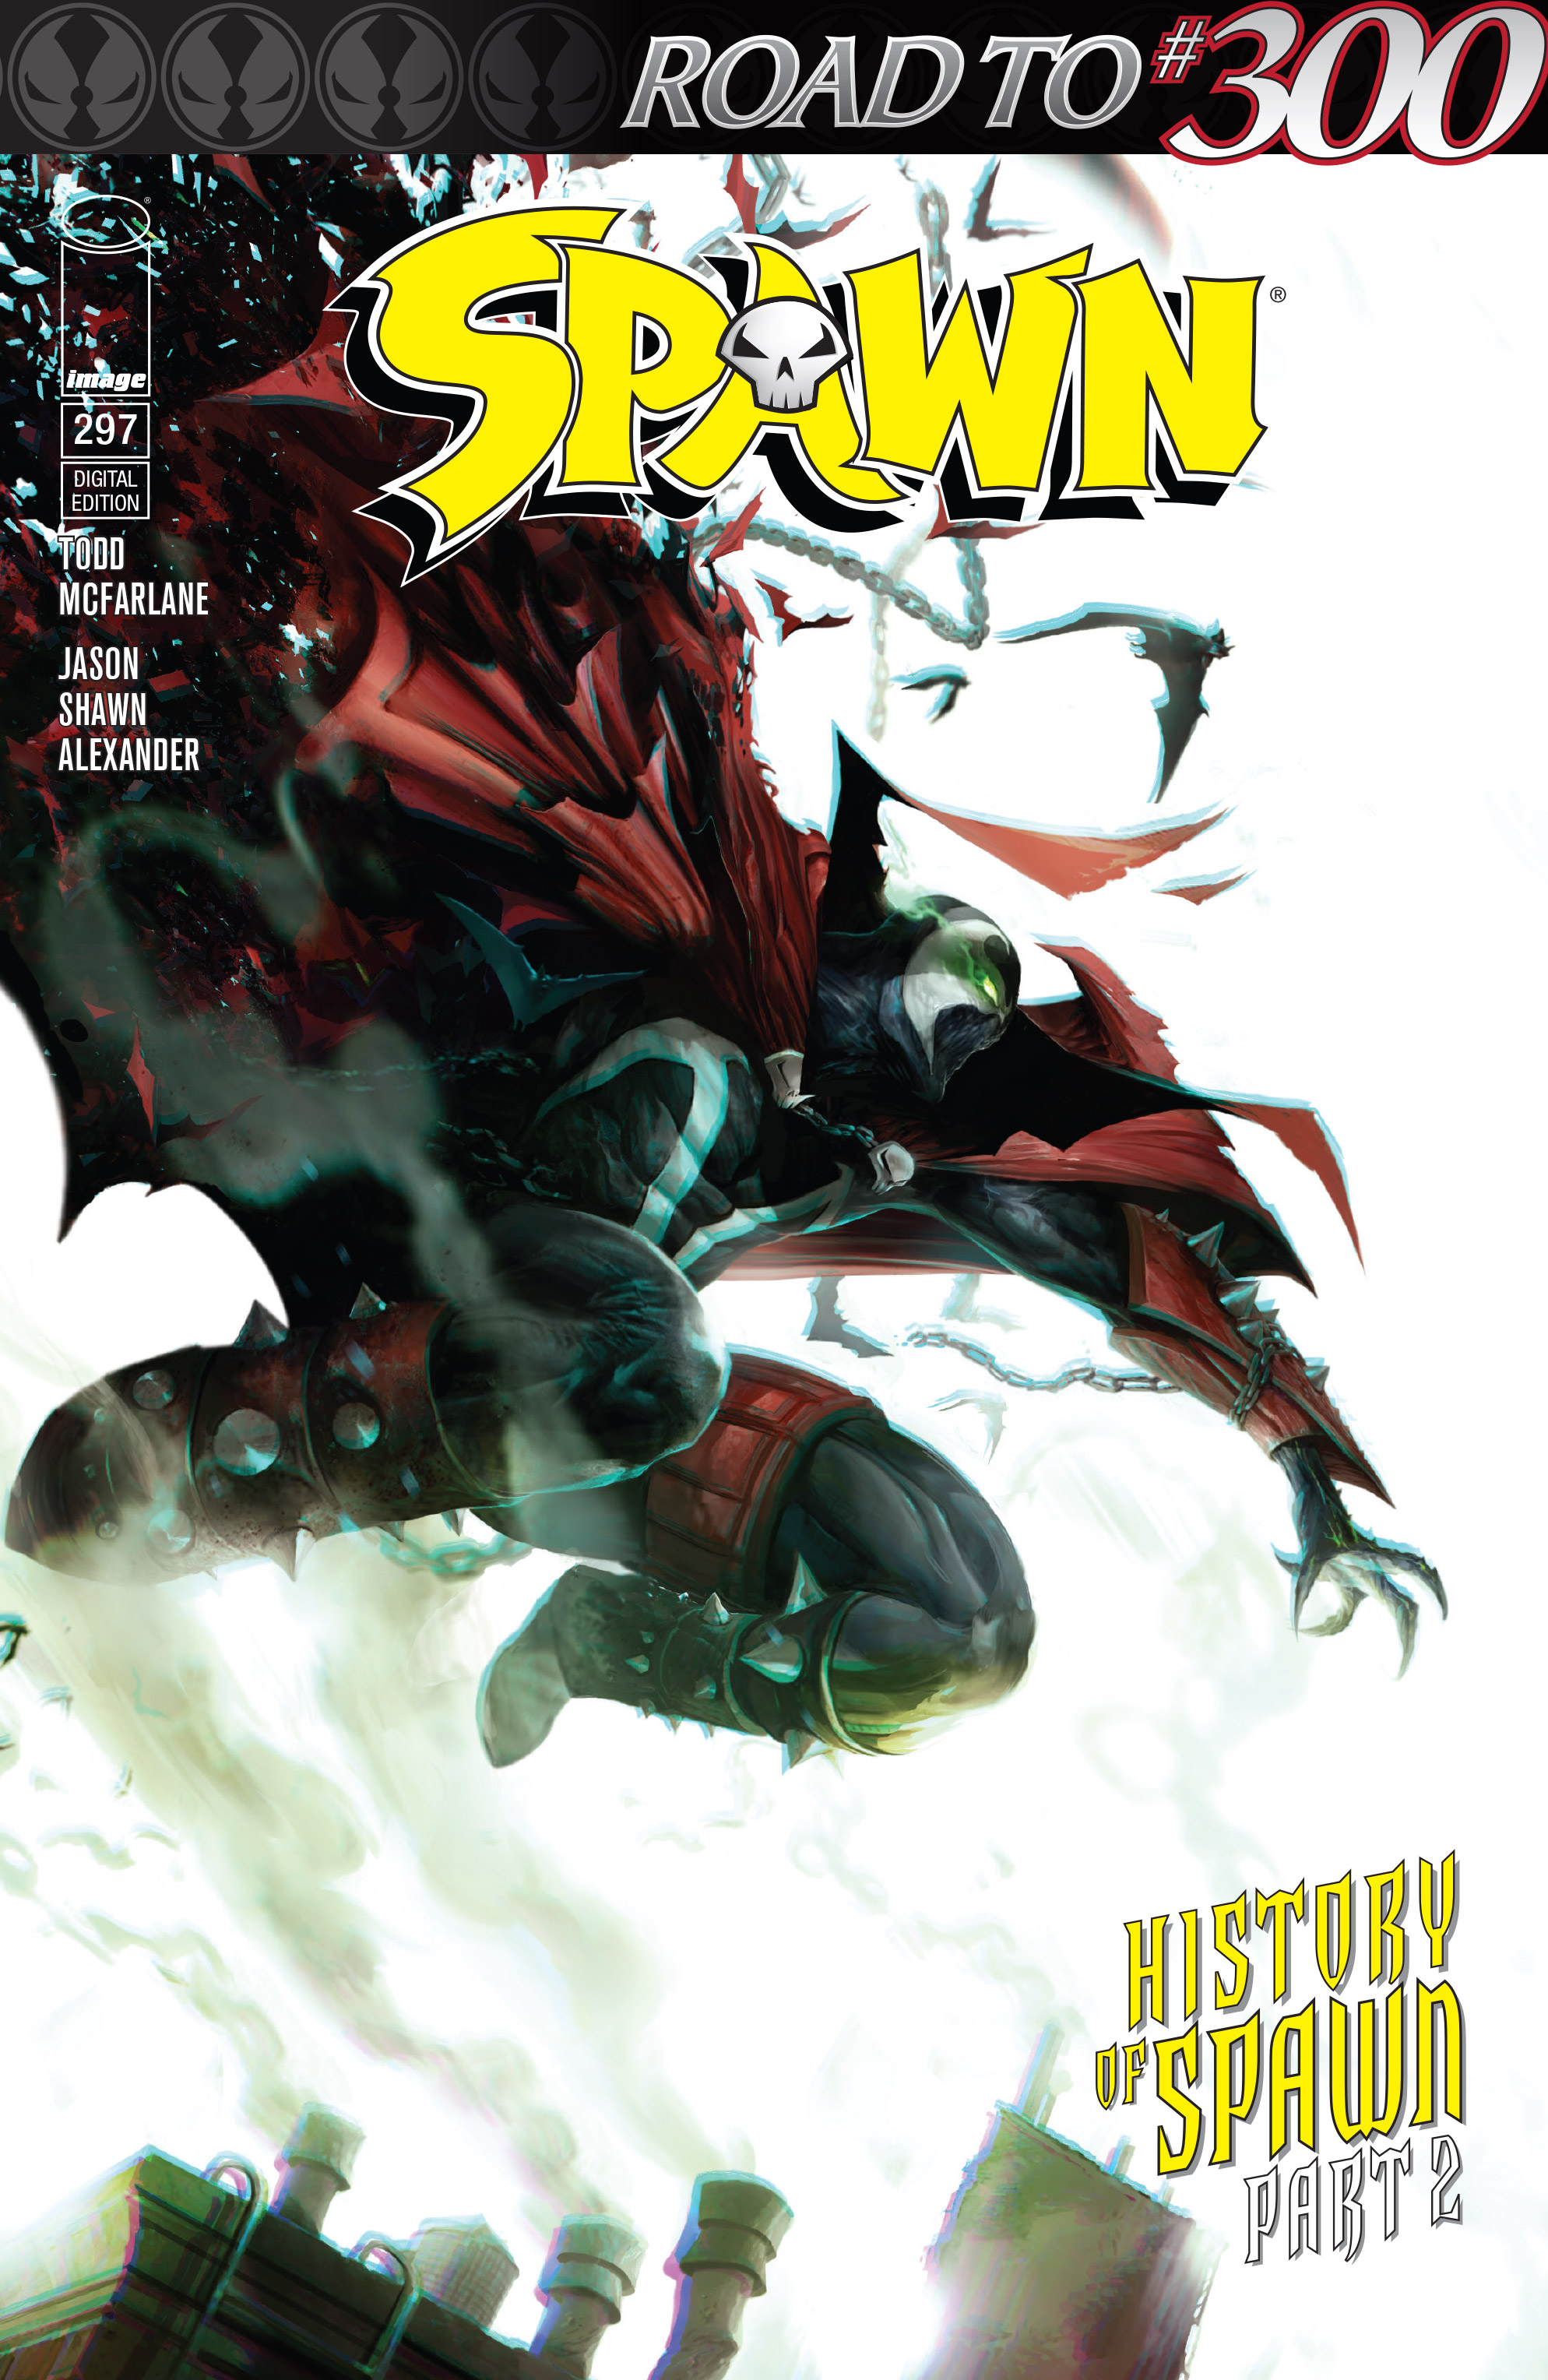 Spawn (1992-): Chapter 297 - Page 1